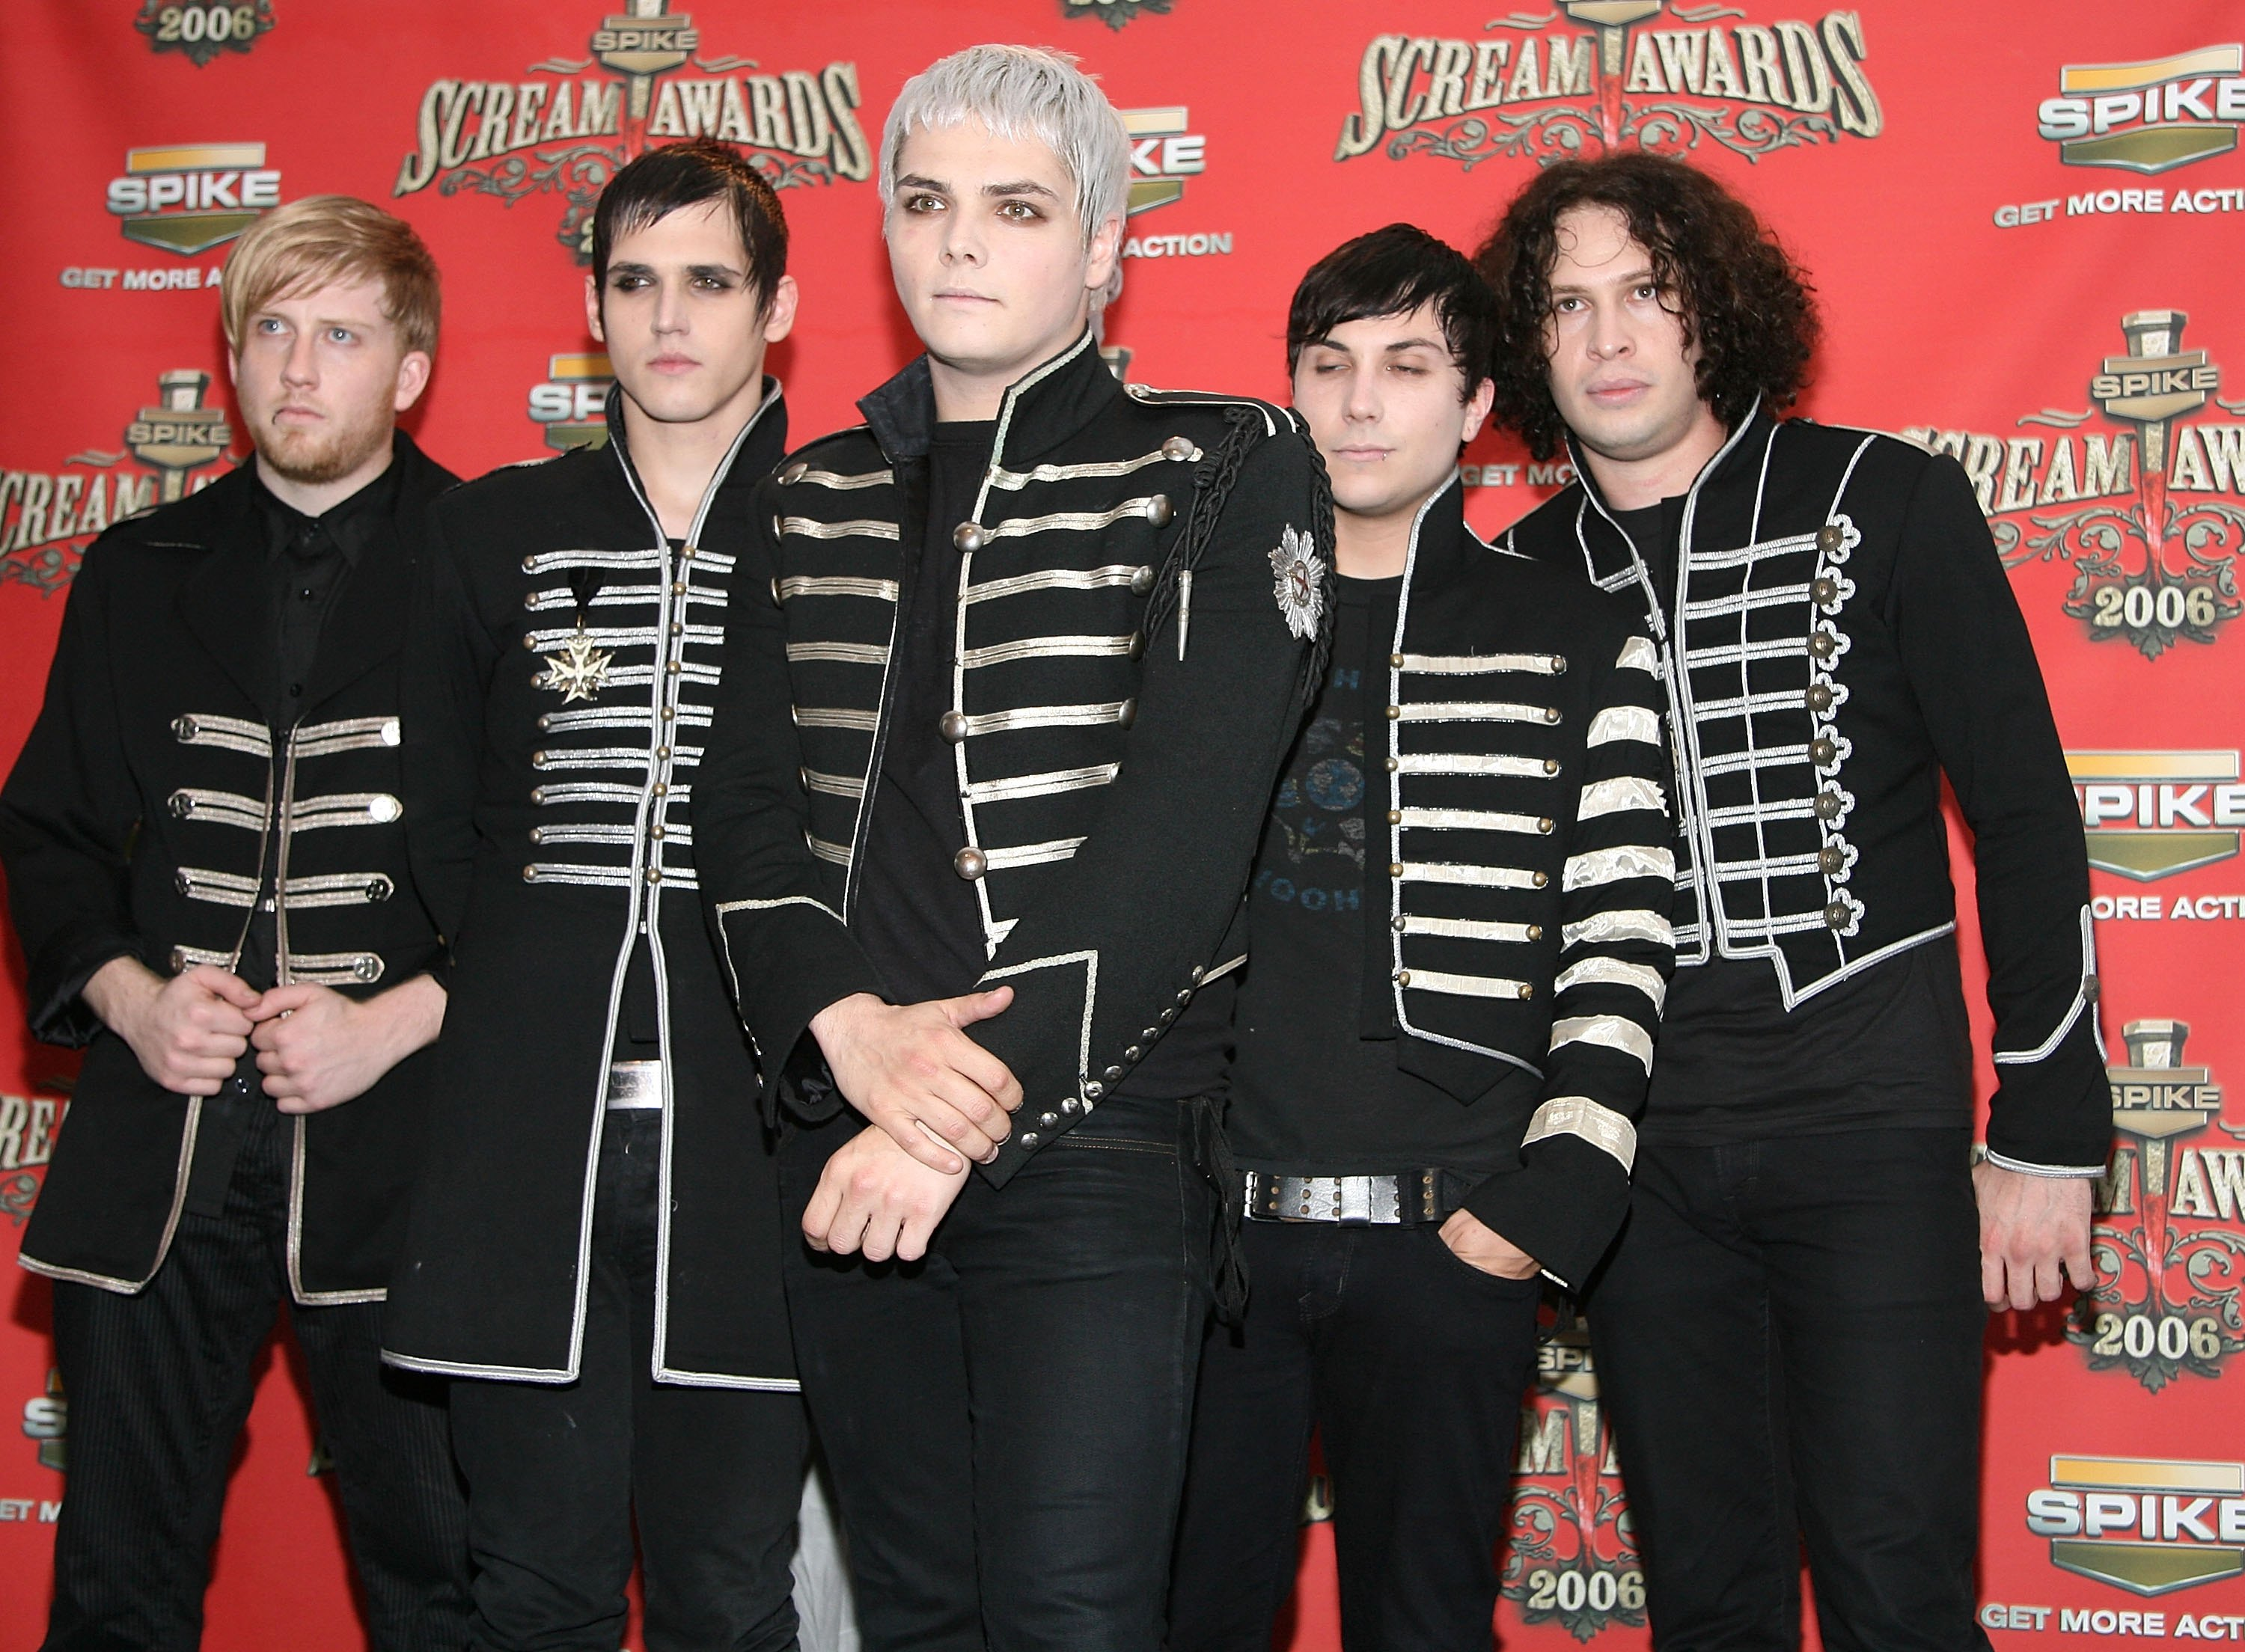 """LOS ANGELES, CA - OCTOBER 07: The band My Chemical Romance pose in the press room for Spike TV's """"Scream Awards 2006"""" at the Pantages Theatre on October 7, 2006 in Los Angeles, California. (Photo by Michael Buckner/Getty Images)"""